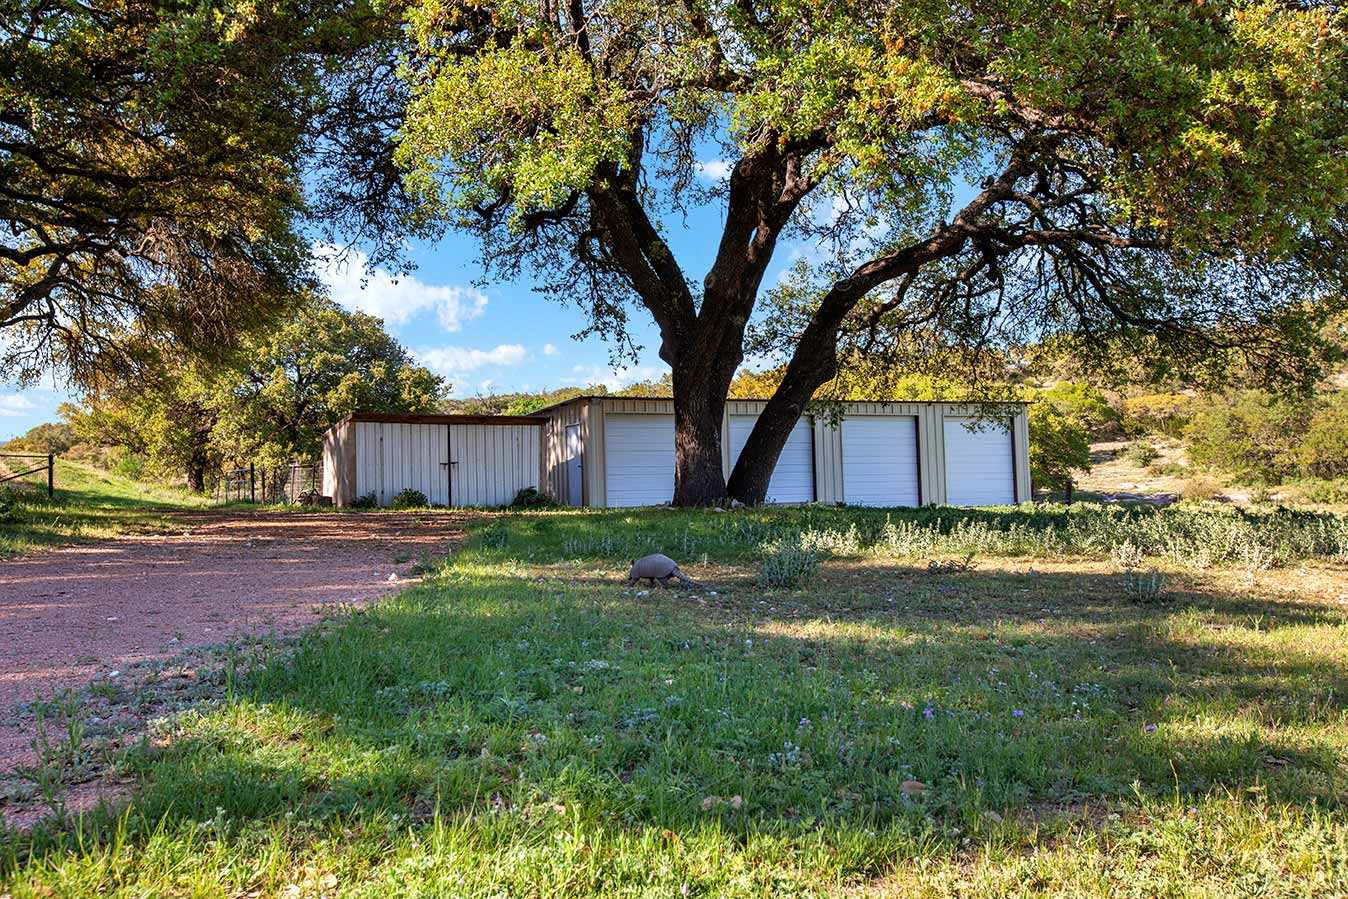 fredericksburg-realty-squaw-creek-ranch-real-estate-land-for-sale-home-house-historic-33.jpg